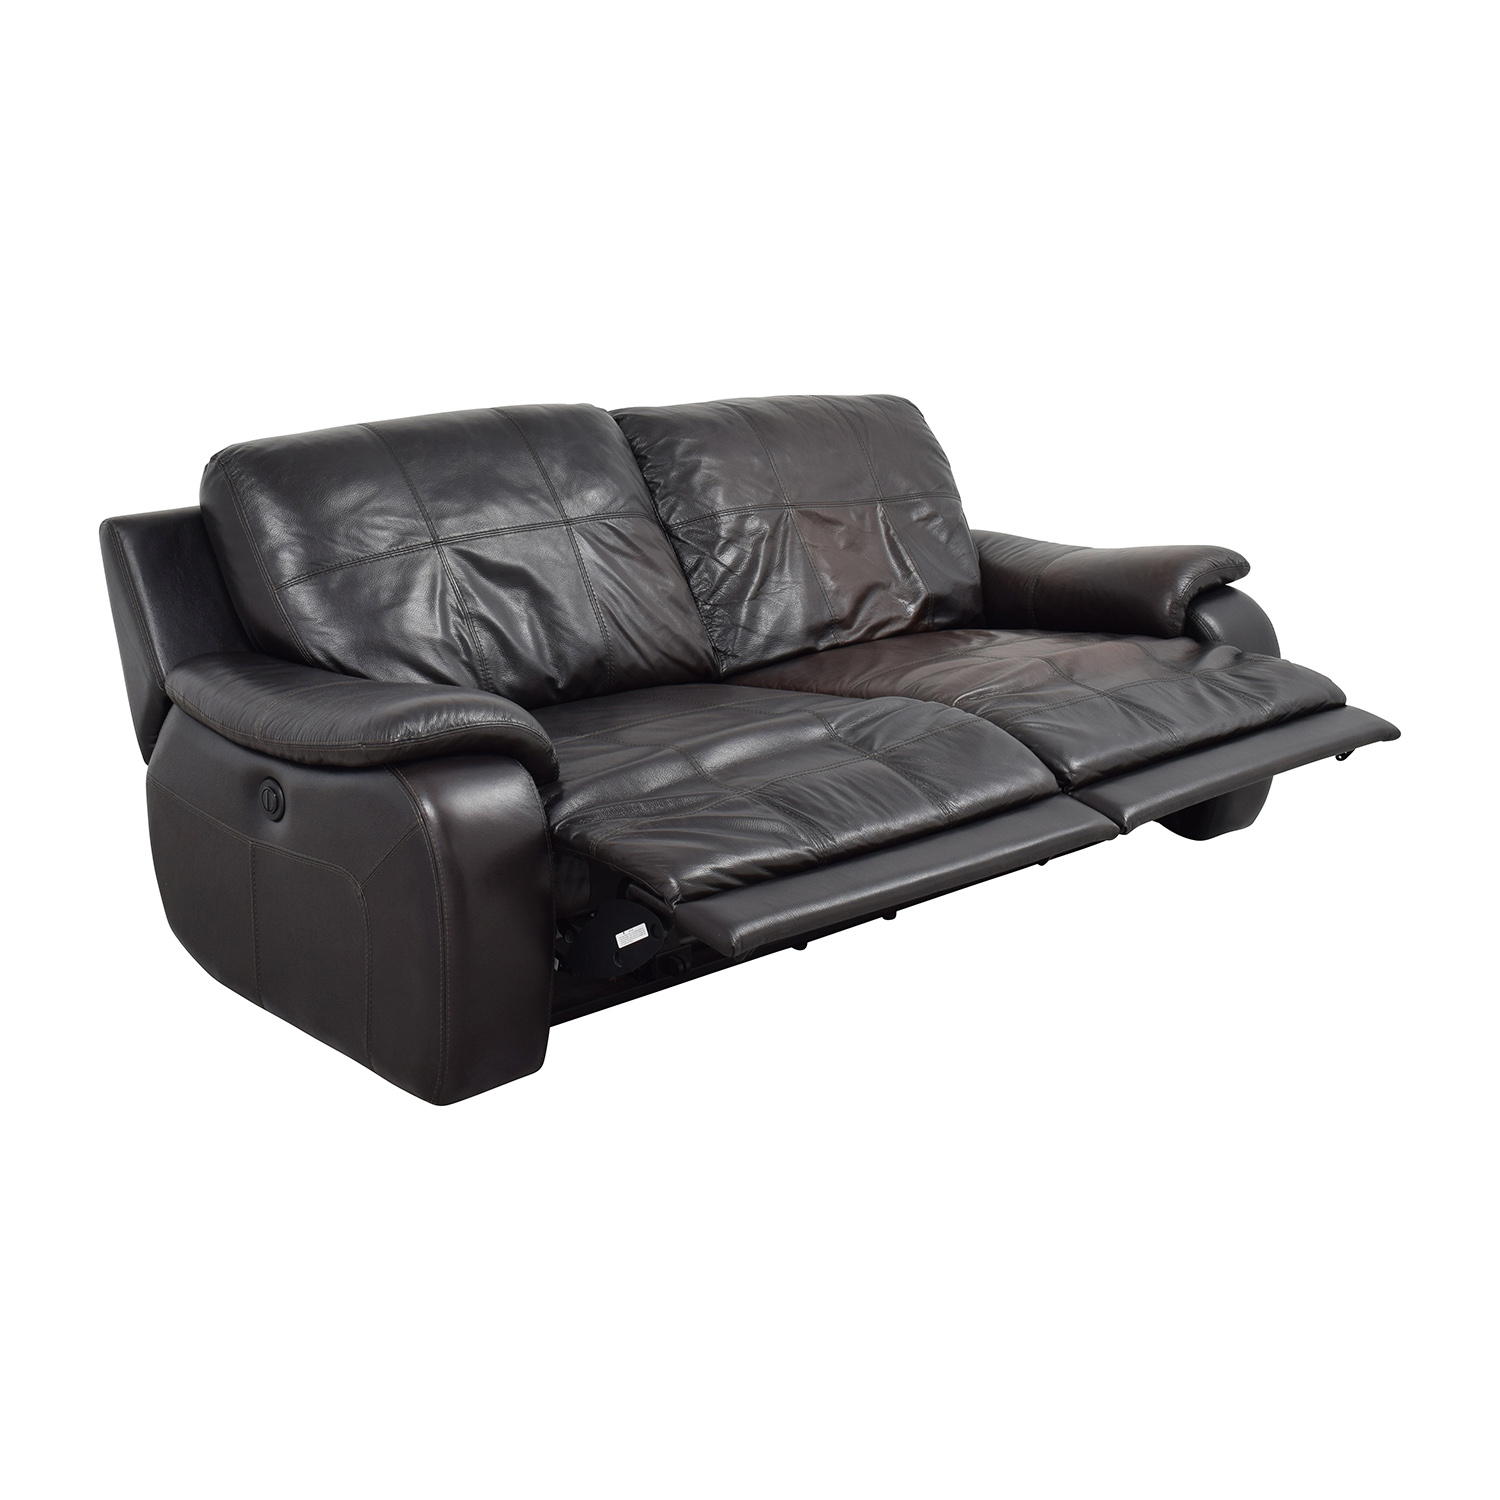 raymour and flanigan chairs pedicure used 87% off - espresso leather power recliner sofa / sofas